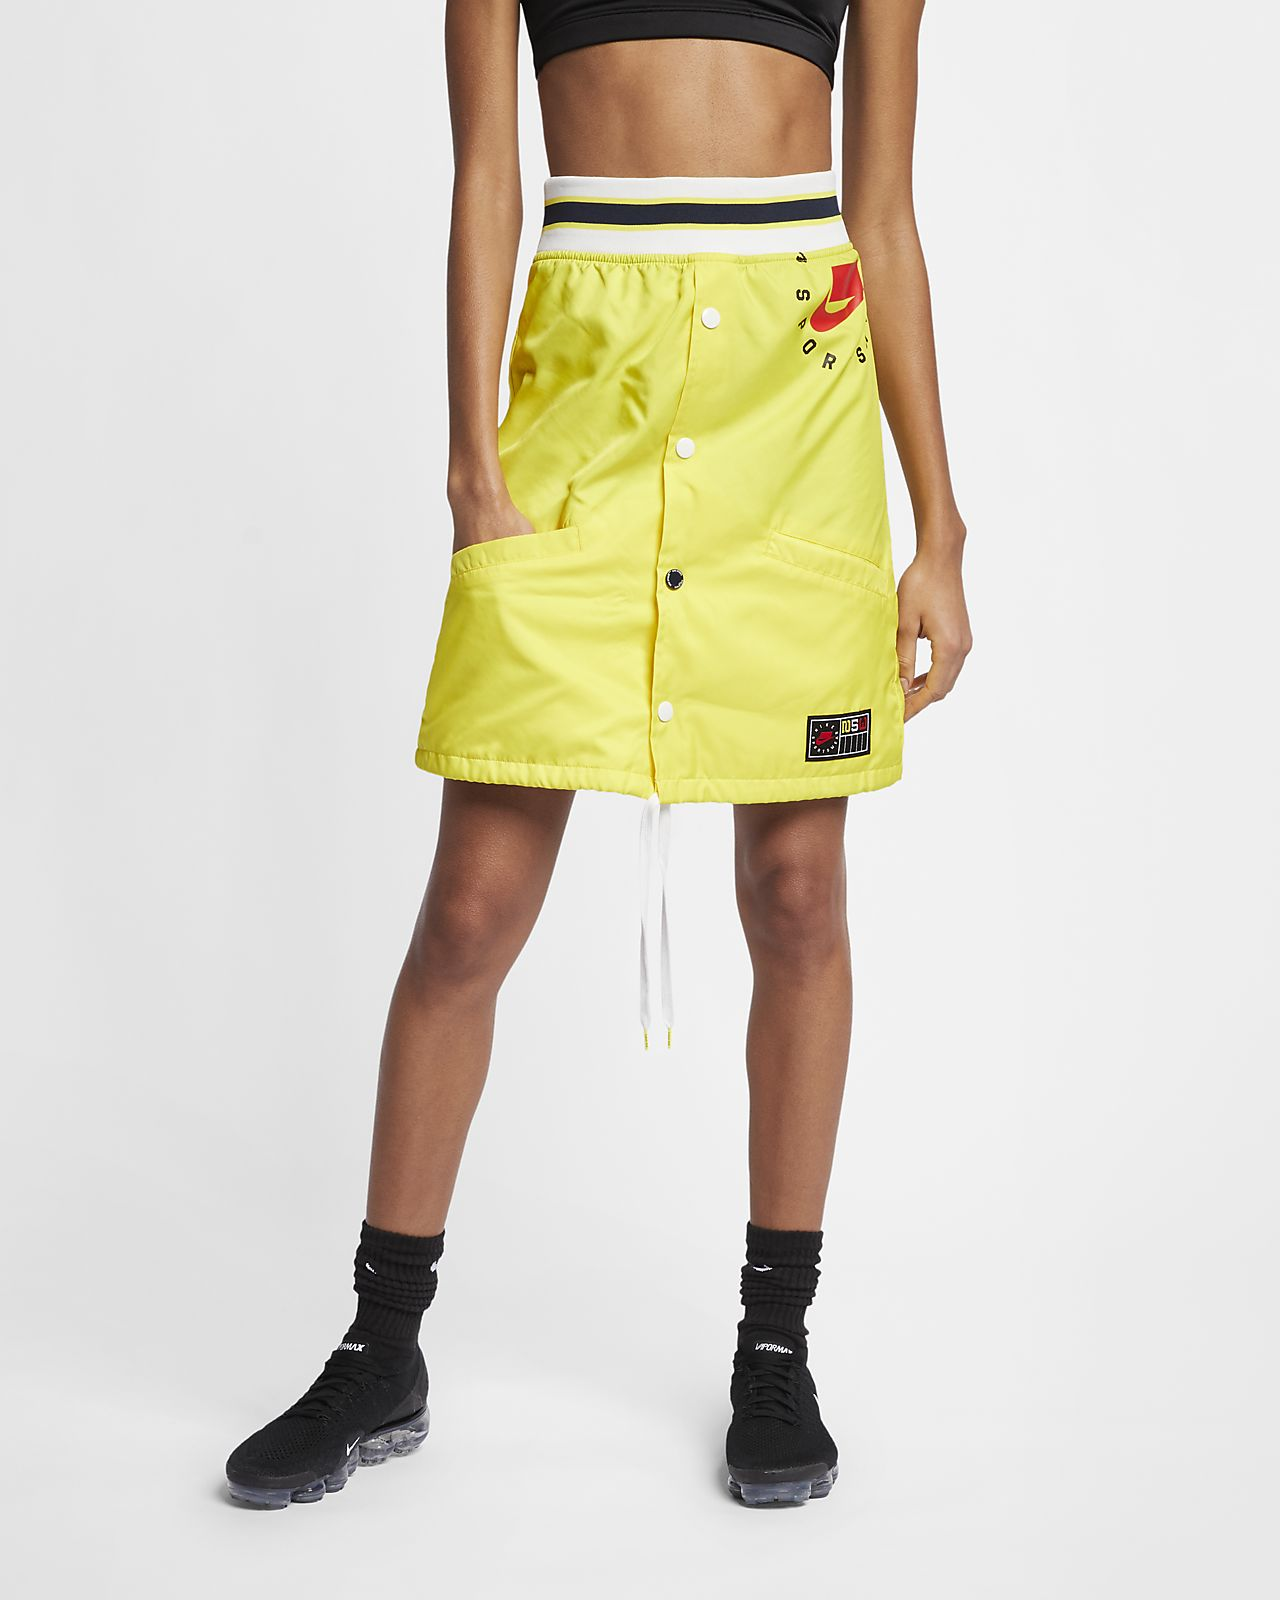 Nike Sportswear NSW Women's Woven Skirt